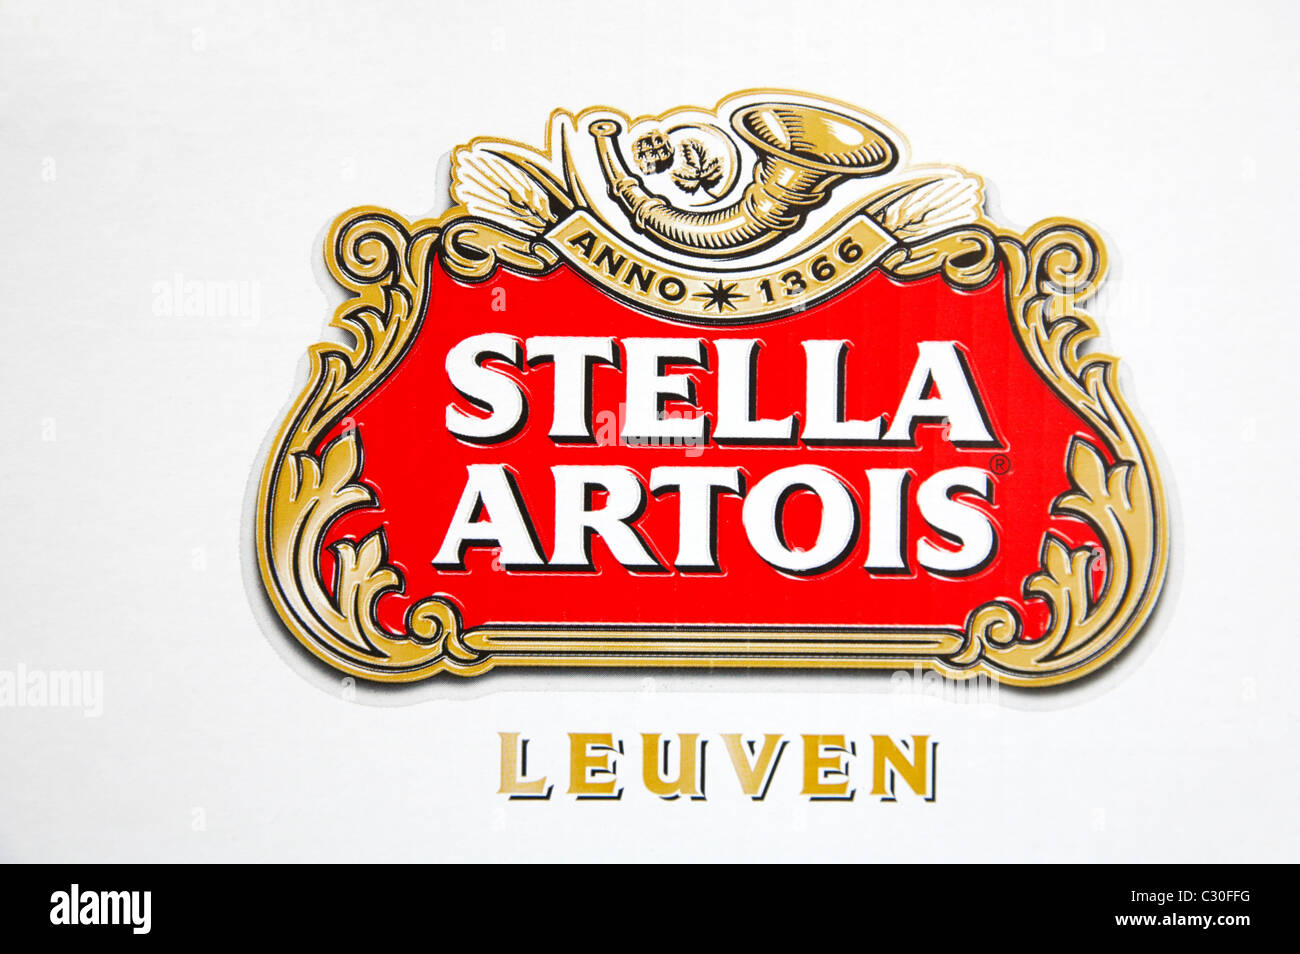 Stella Artois logo Stock Photo